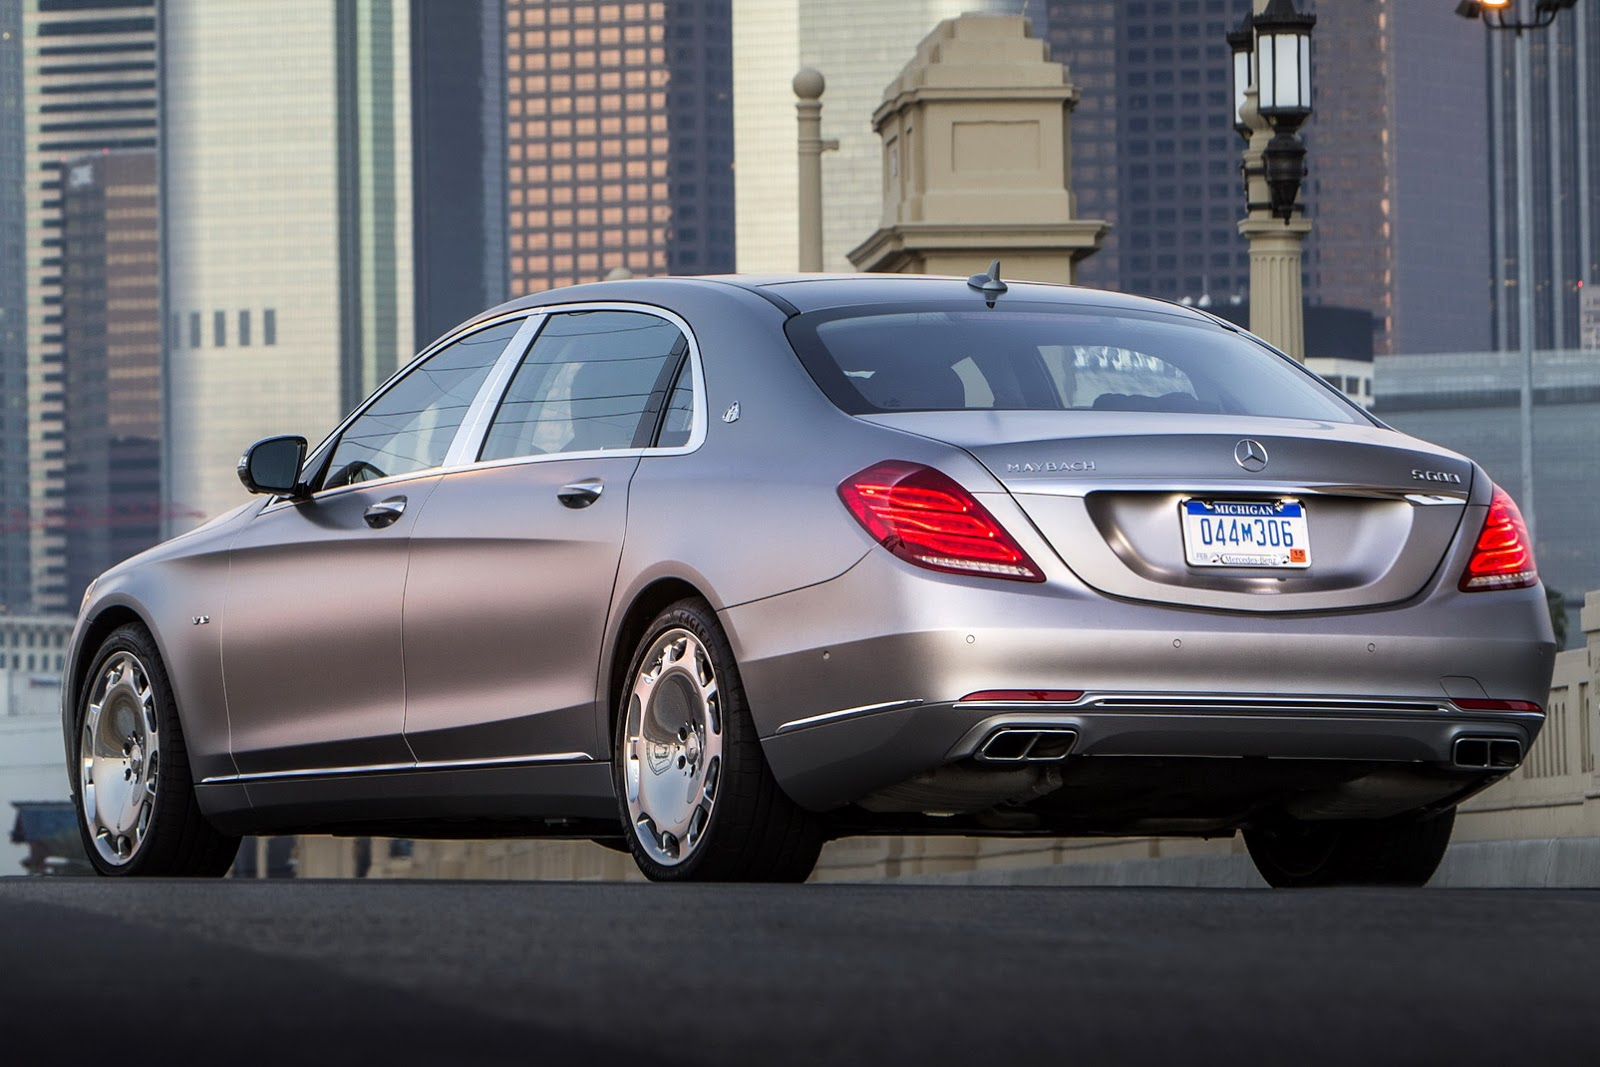 Mercedes Maybach S600 HD wallpapers download 1600x1067